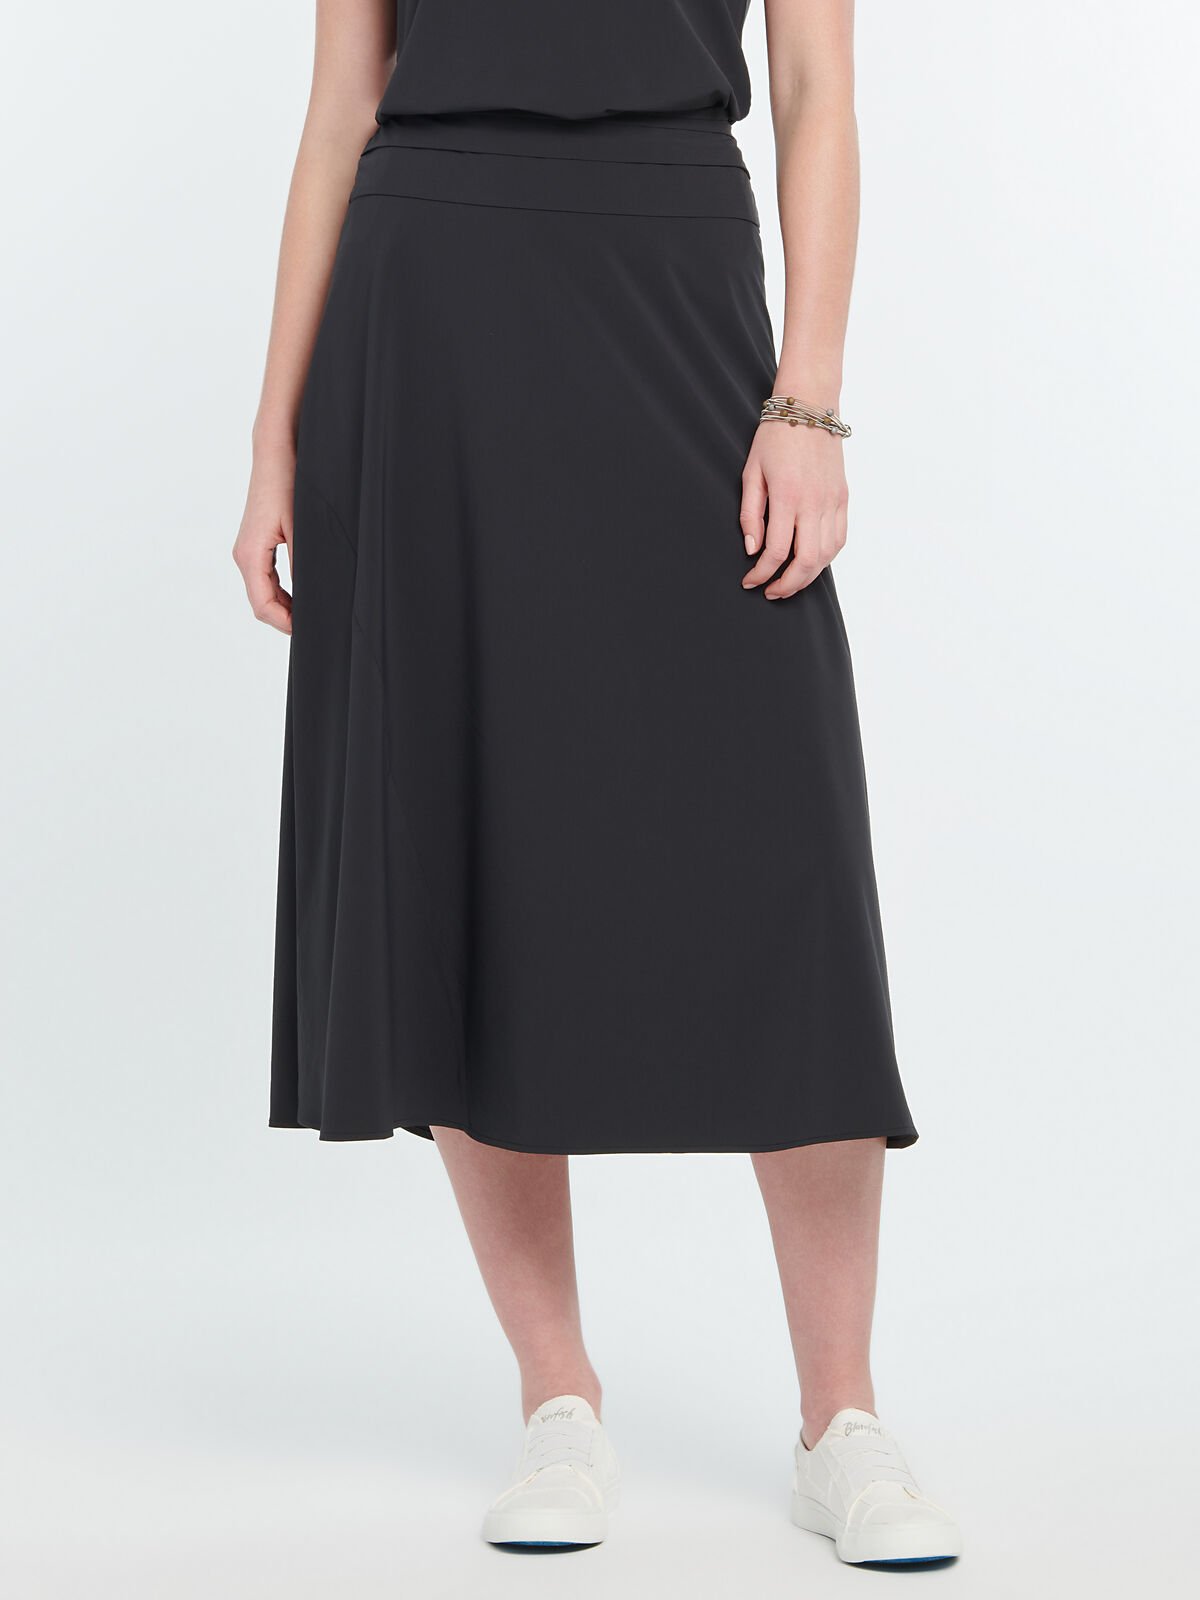 Tech Stretch Skirt